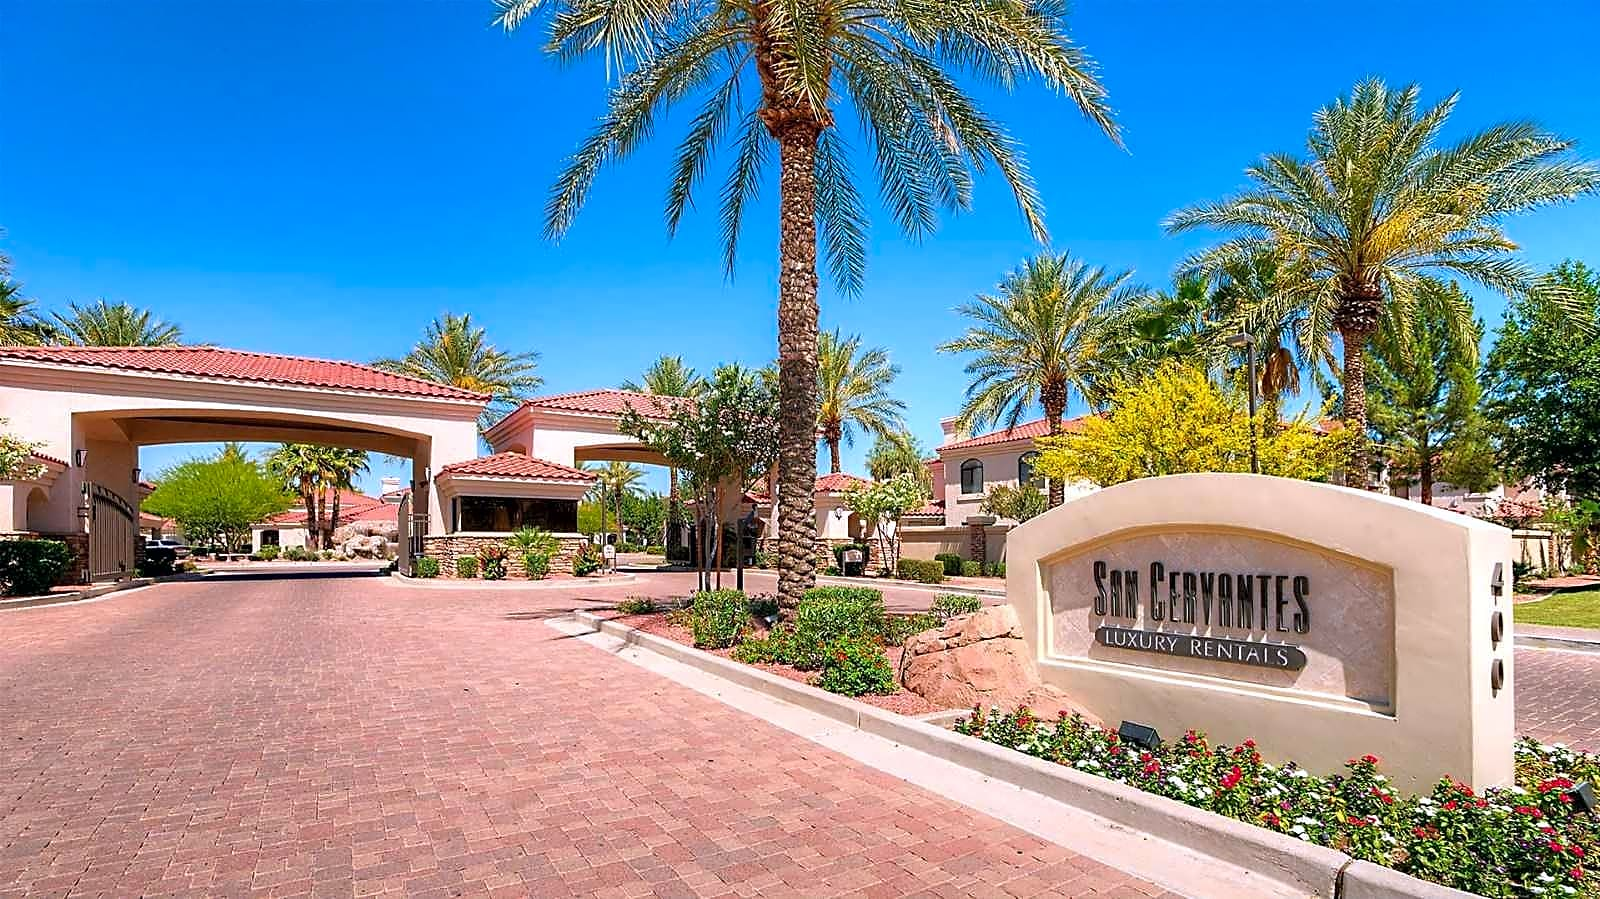 San Cervantes Apartments - Chandler, AZ 85224